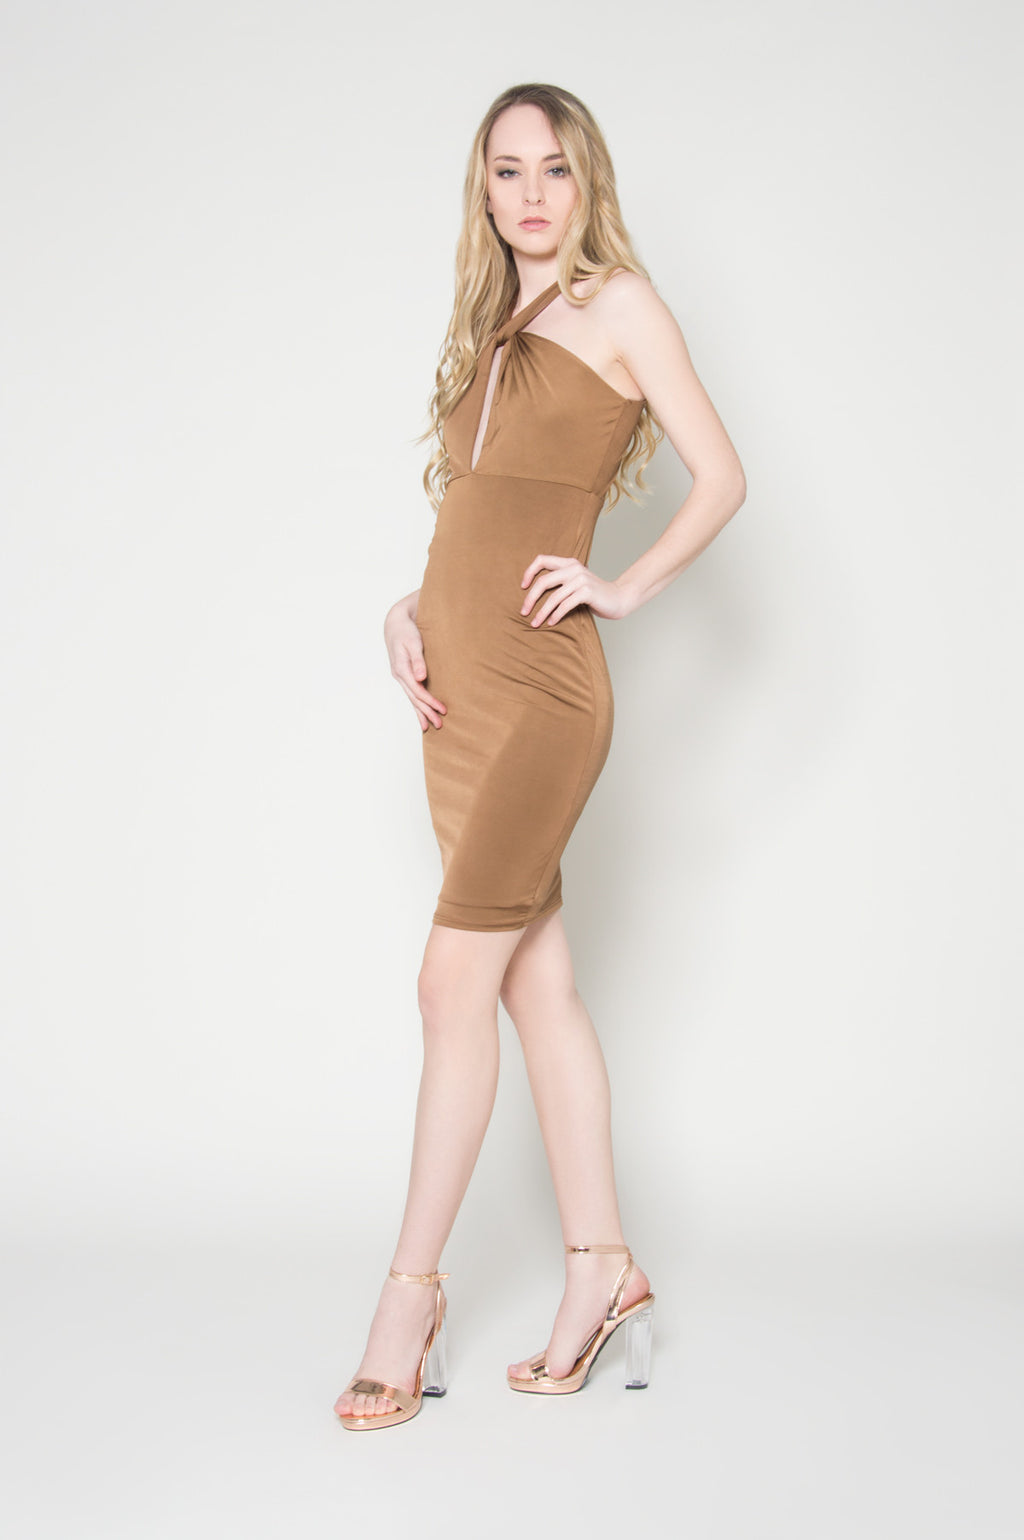 Mesmerized beyond explanation halter dress, Dresses